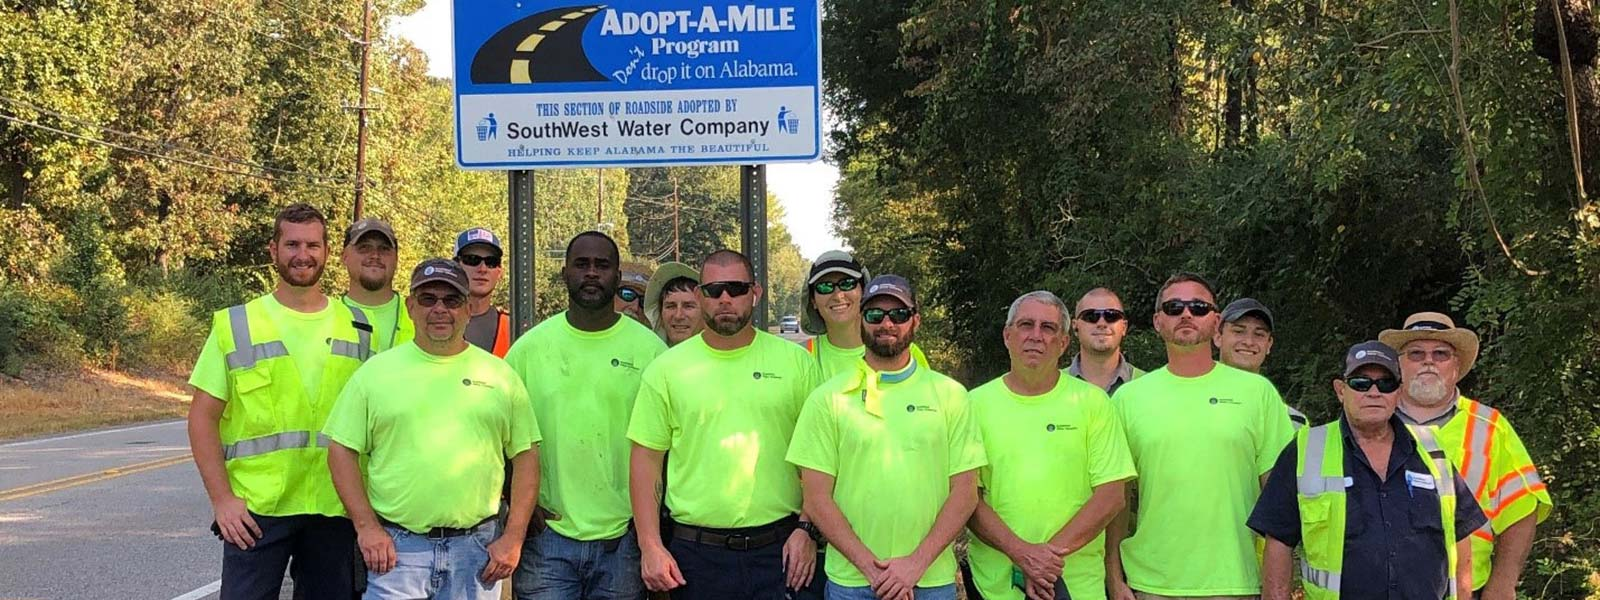 SouthWest Water Company Alabama Team Continues With Adopt-A-Mile Efforts